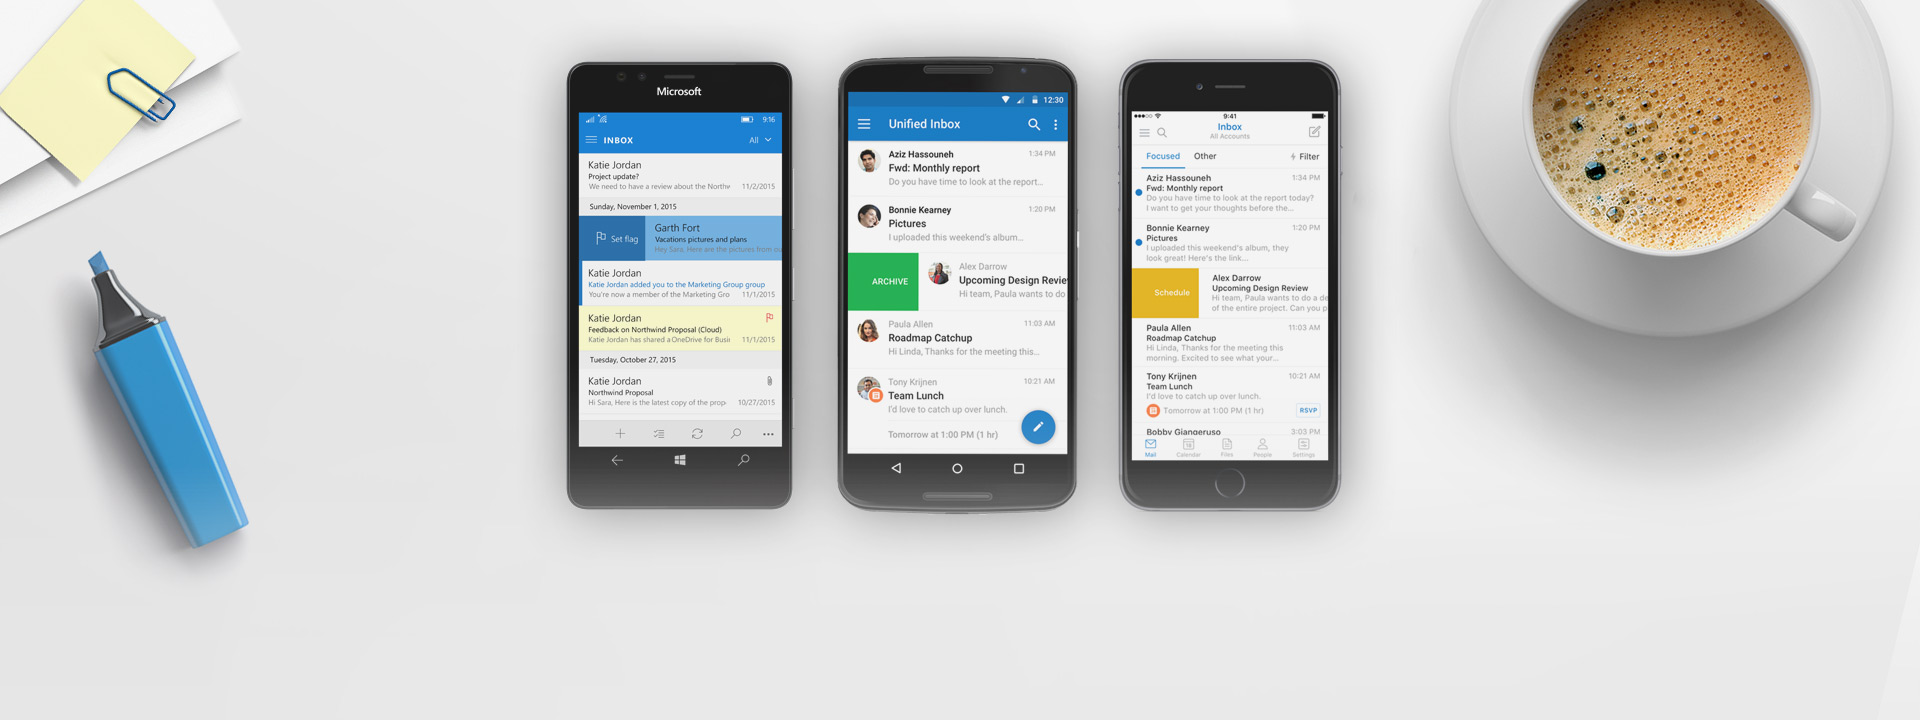 Windows Phone, iPhone en Android-telefoons met Outlook-app op het scherm